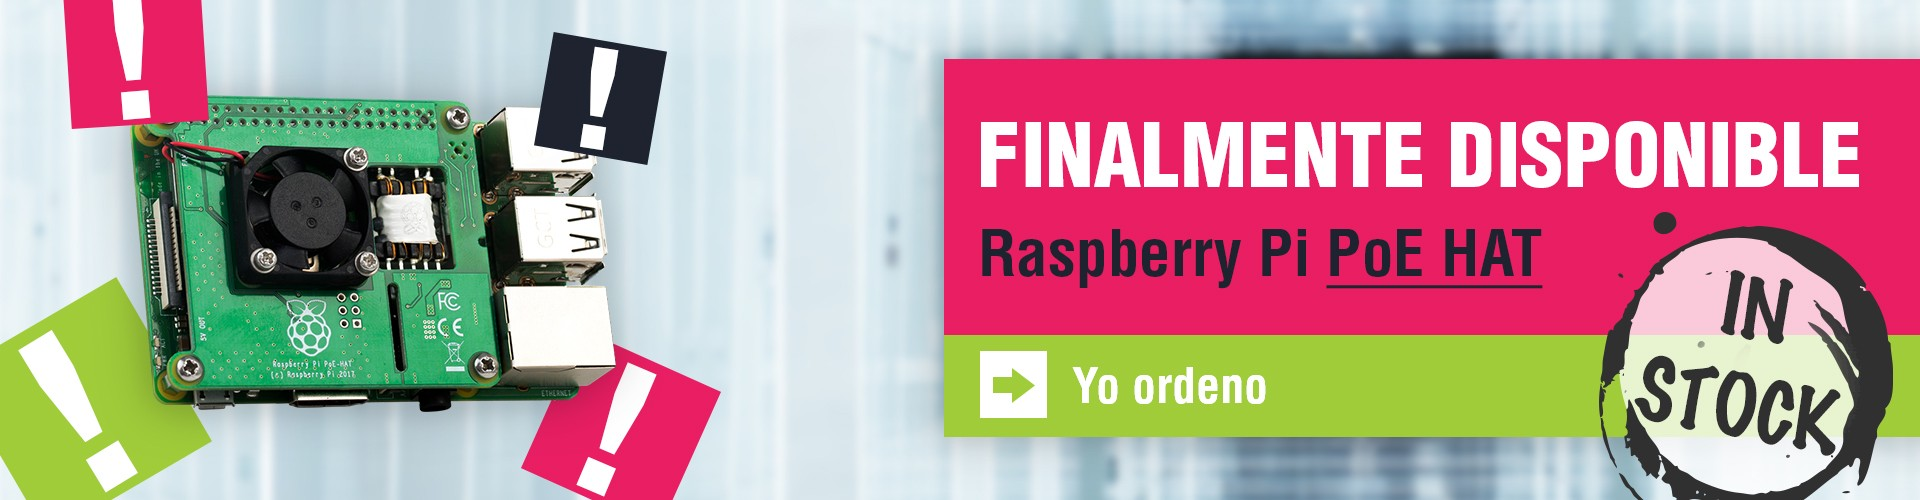 Finalmente disponible Raspberry PoE Hat